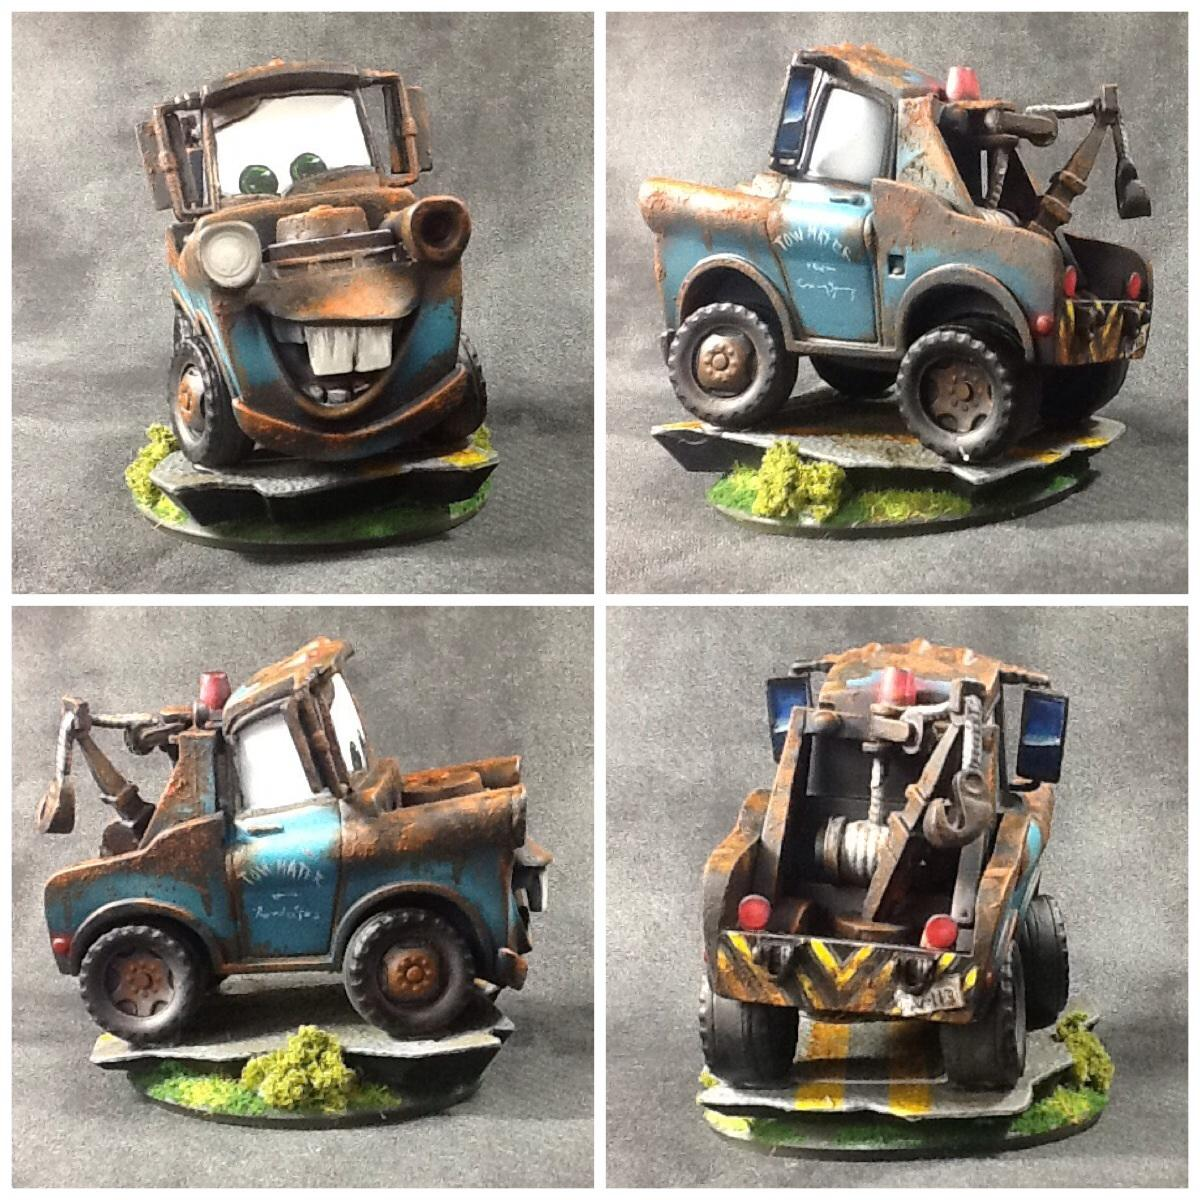 40k Land Speeder, Cars, Disney, Hand, Infinity, Painted, Tow Mater